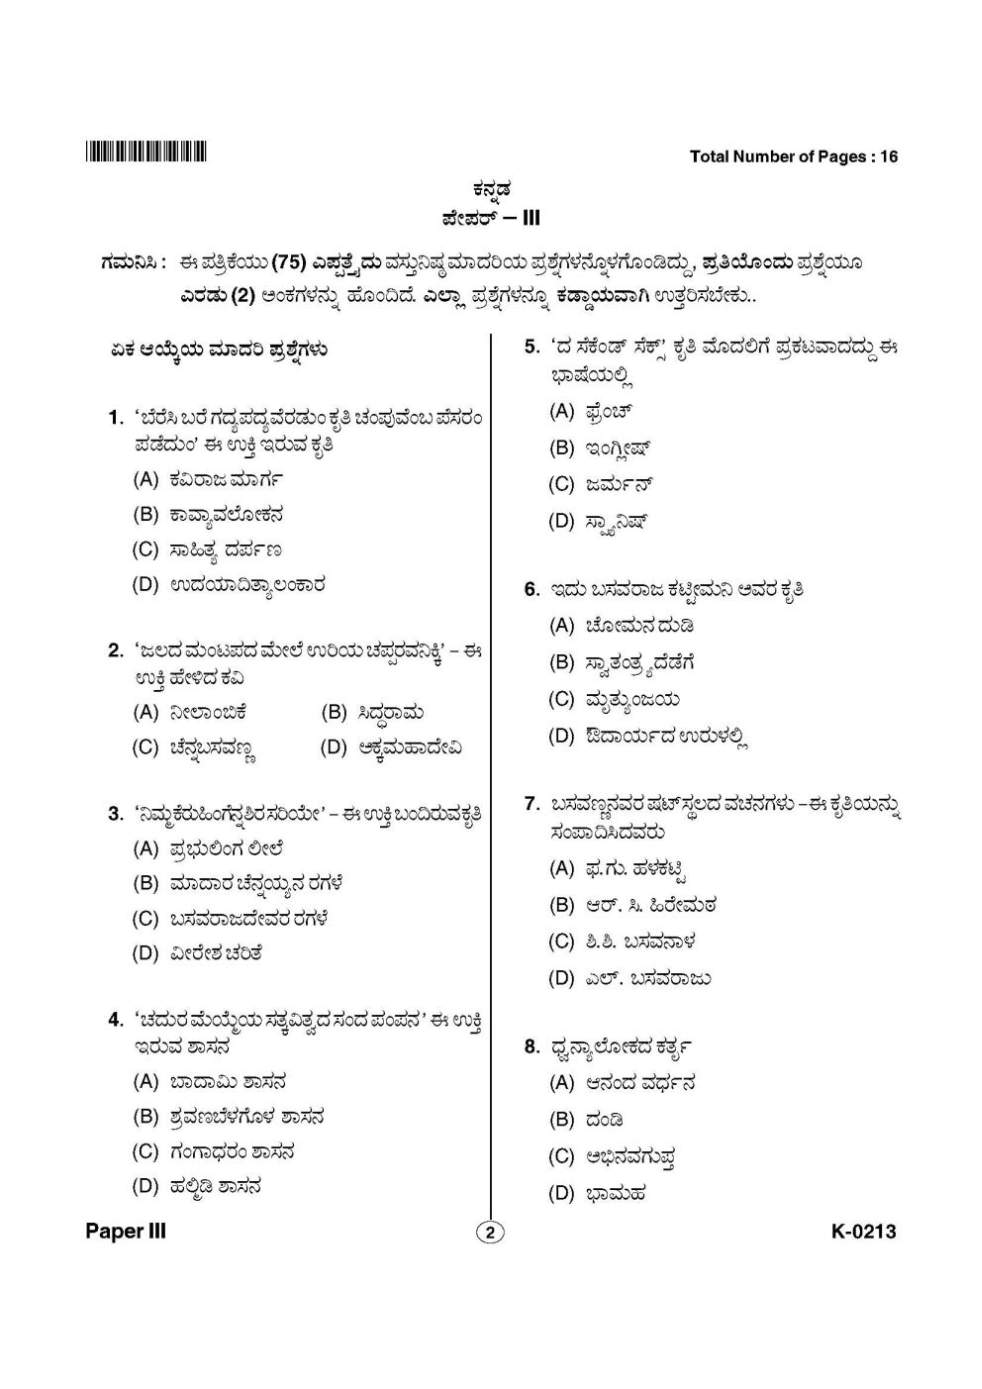 027 Essay Example K Set Examination Kannada Question Papers Why I Want To Amazing Be A Teacher Free Sample In Hindi Full